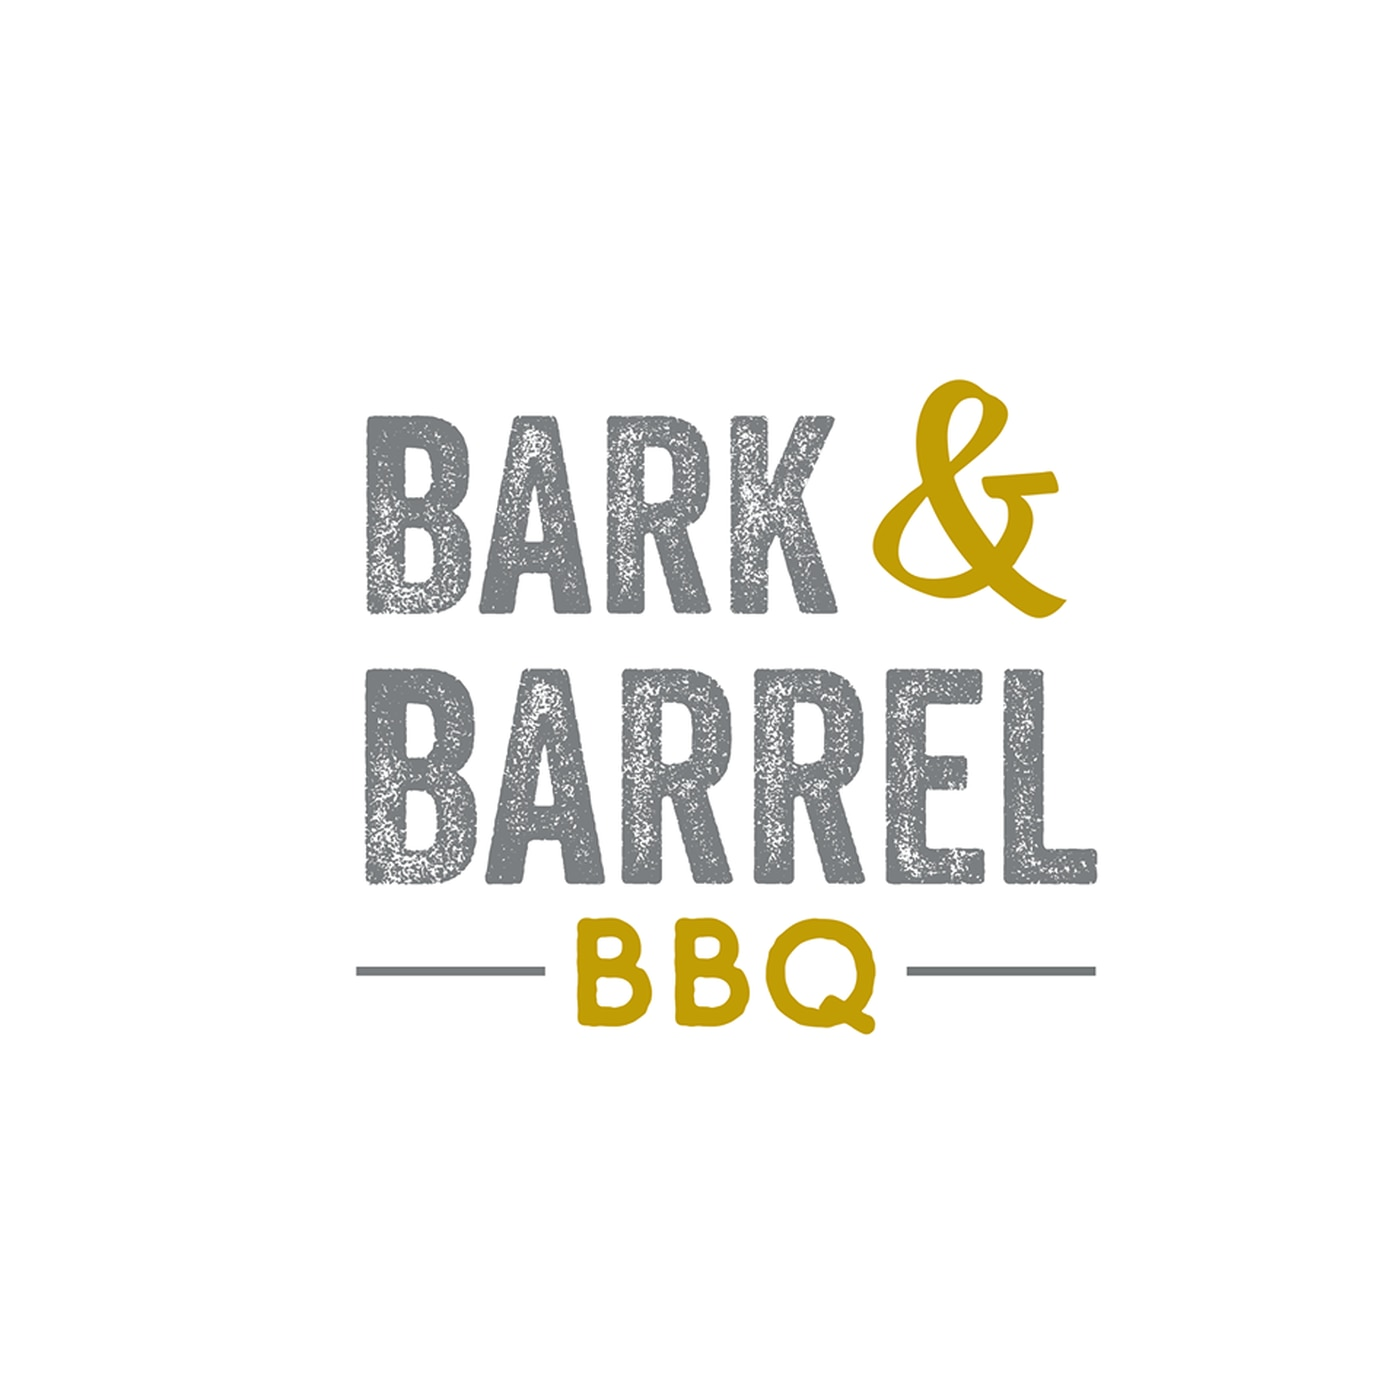 Bark & Barrel BBQ